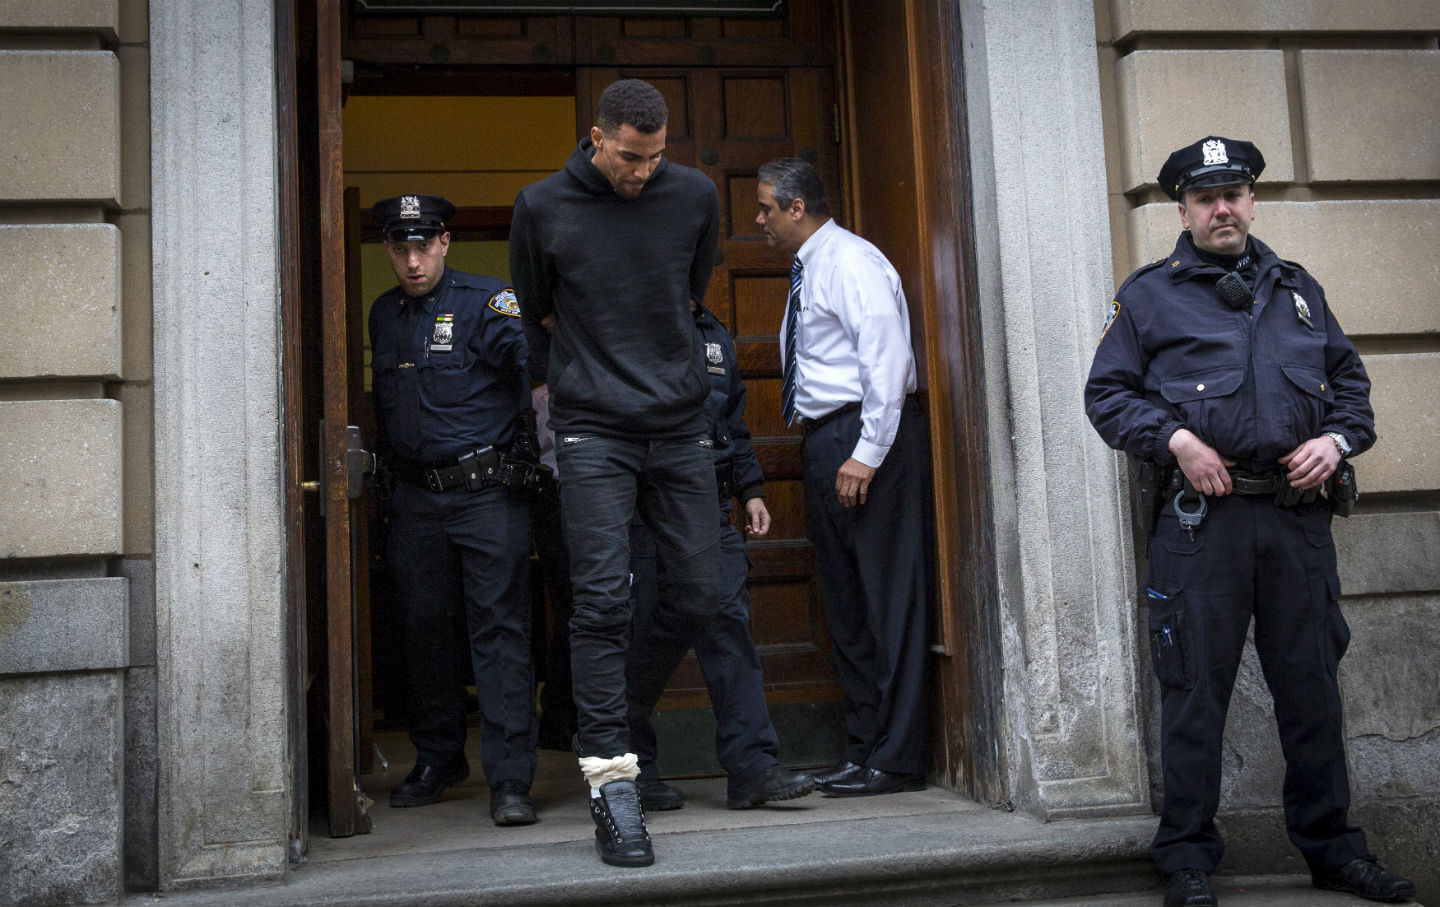 NBA player Thabo Sefolosha of the Atlanta Hawks is escorted out of the NYPD's 10th Precinct with a fractured fibula on April 8, 2015. (Reuters/Andrew Kelly)